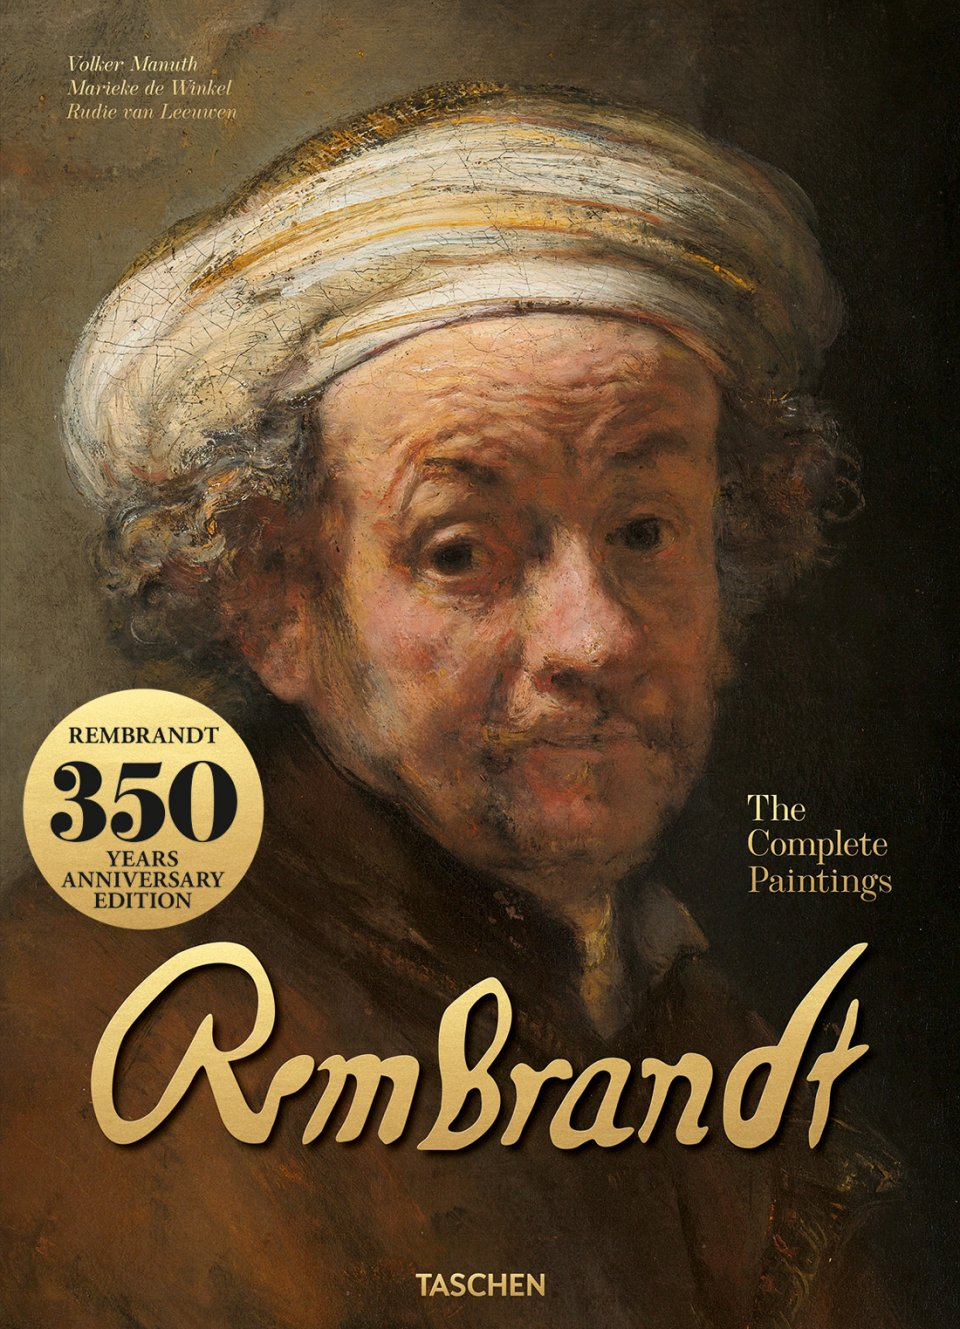 2019 is the year of Dutch master Rembrandt (350 years since his death) with the release of two XL books: The Complete Paintings and The Complete Drawings